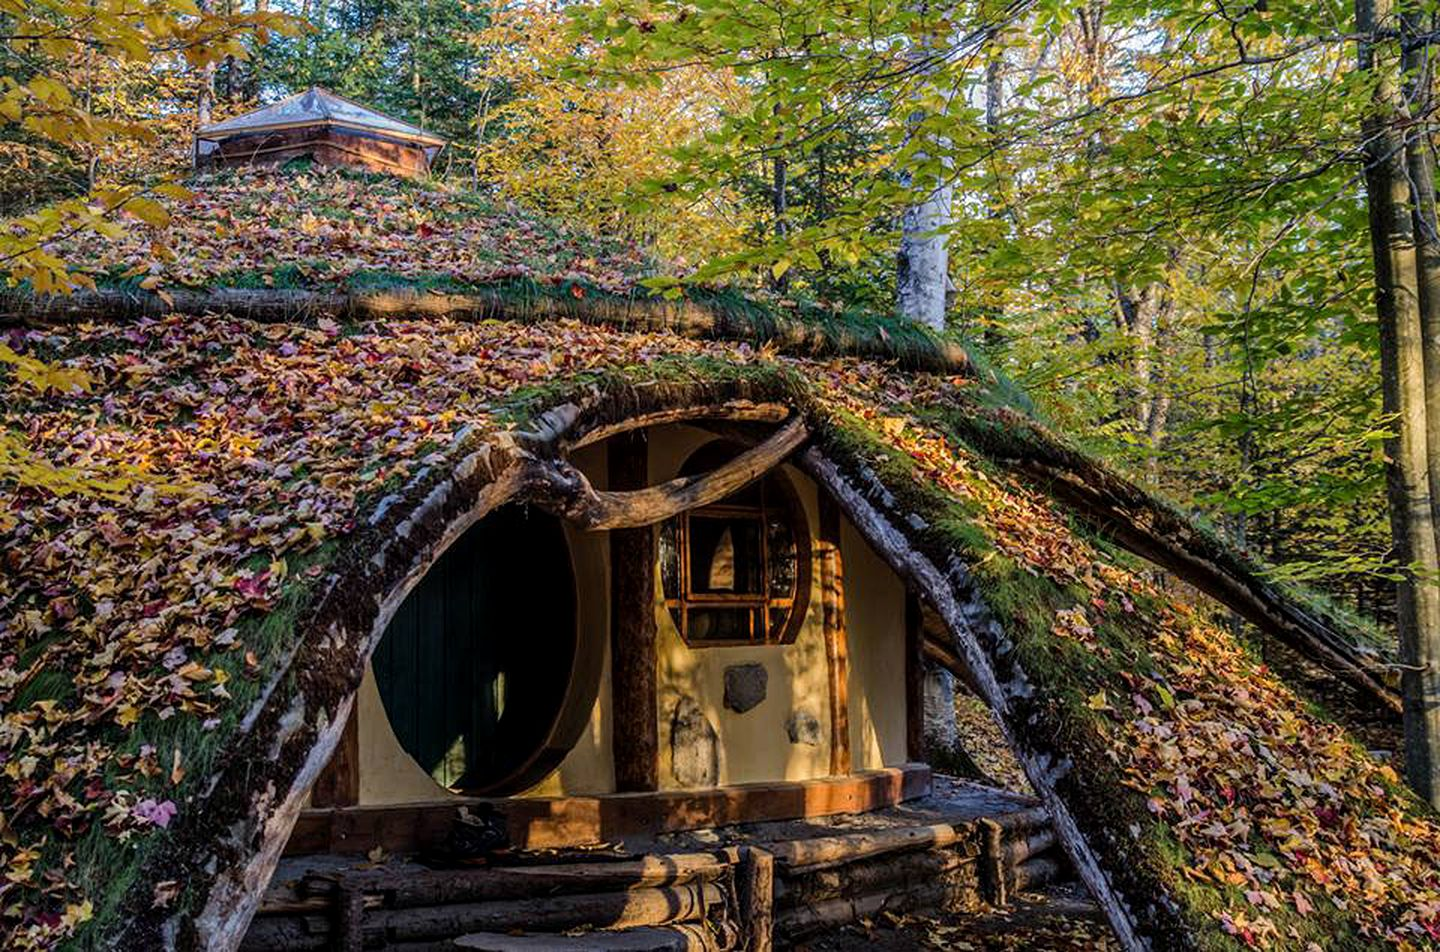 Enjoy this quaint hobbit hole: glamping pod rental in Quebec, Canada